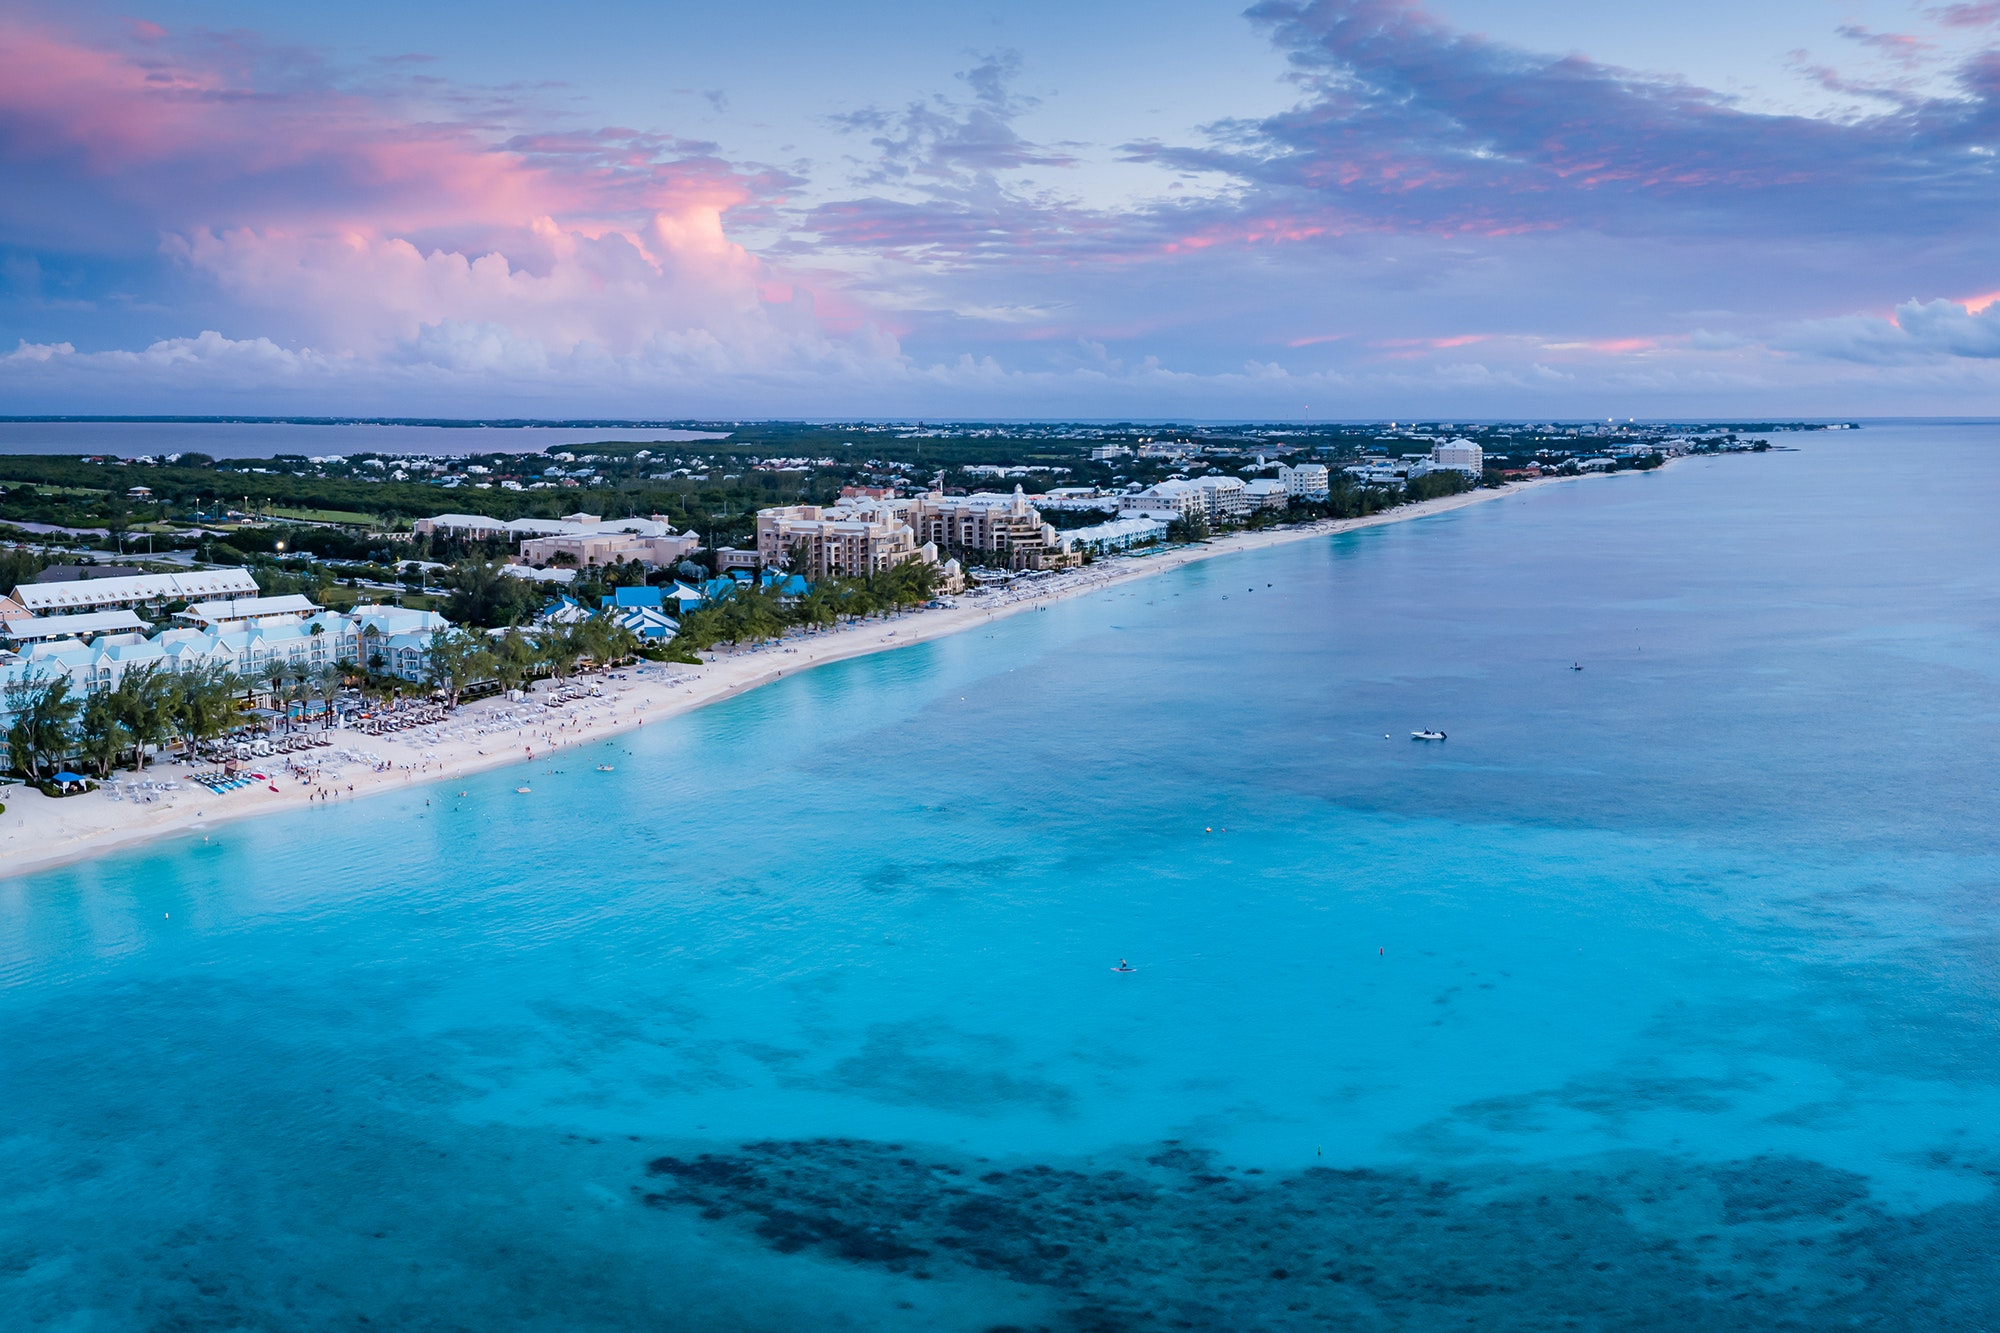 In addition to the annual Cayman Cookout, the first KAABOO festival will take place on Grand Cayman's Seven Mile Beach.